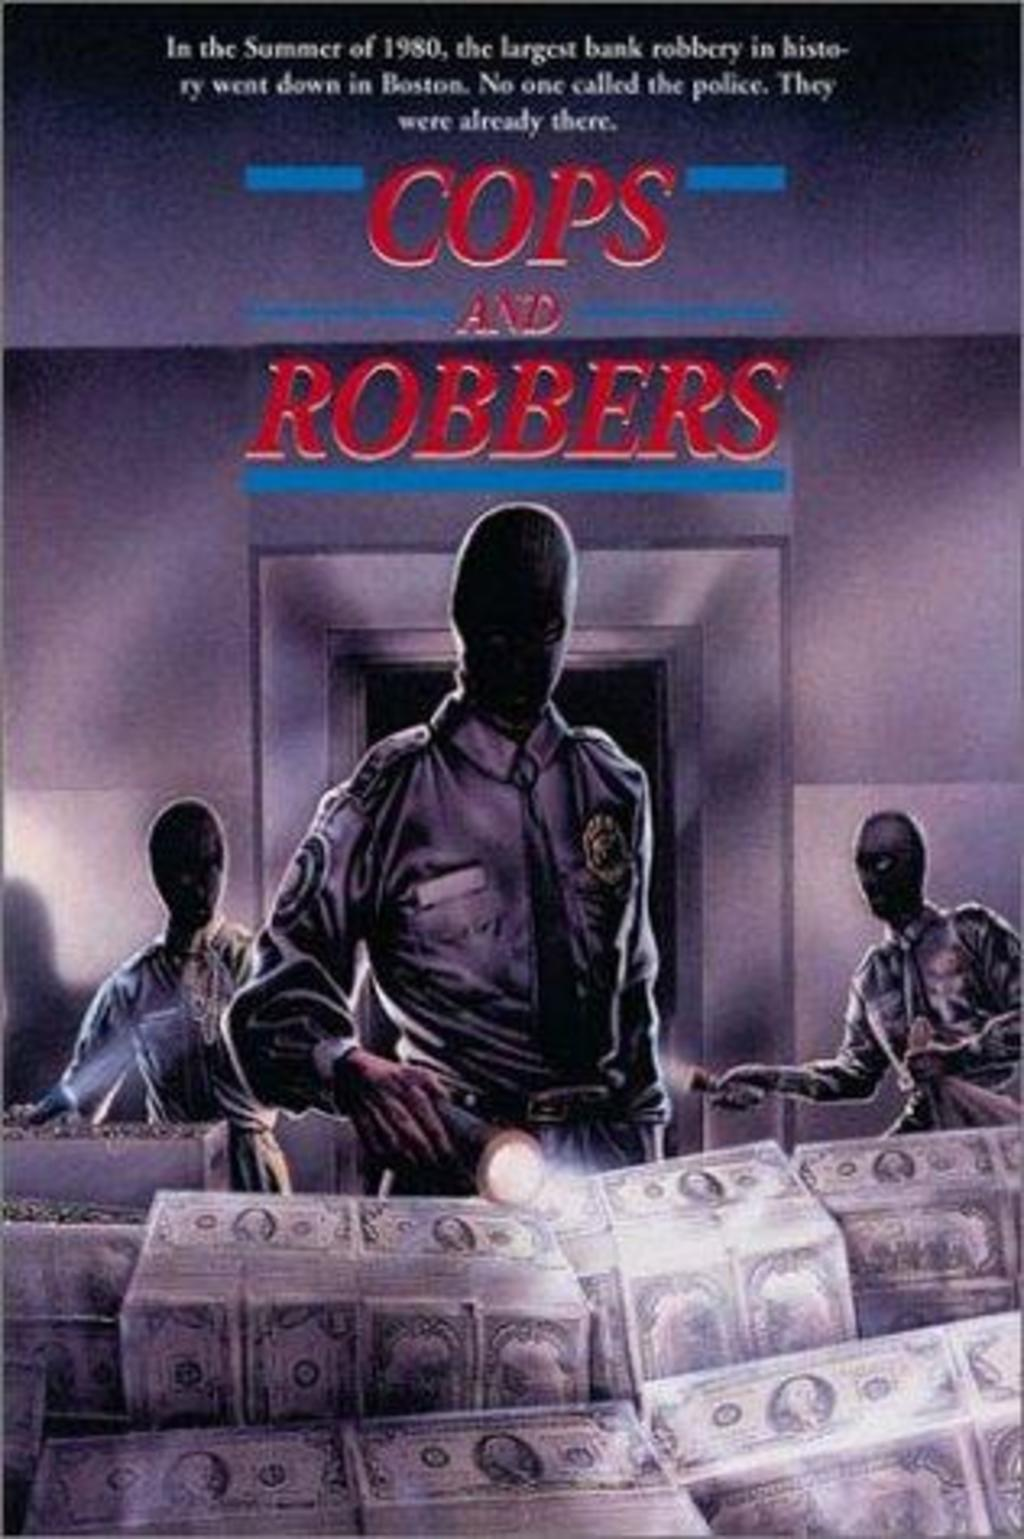 Cops robbers movie